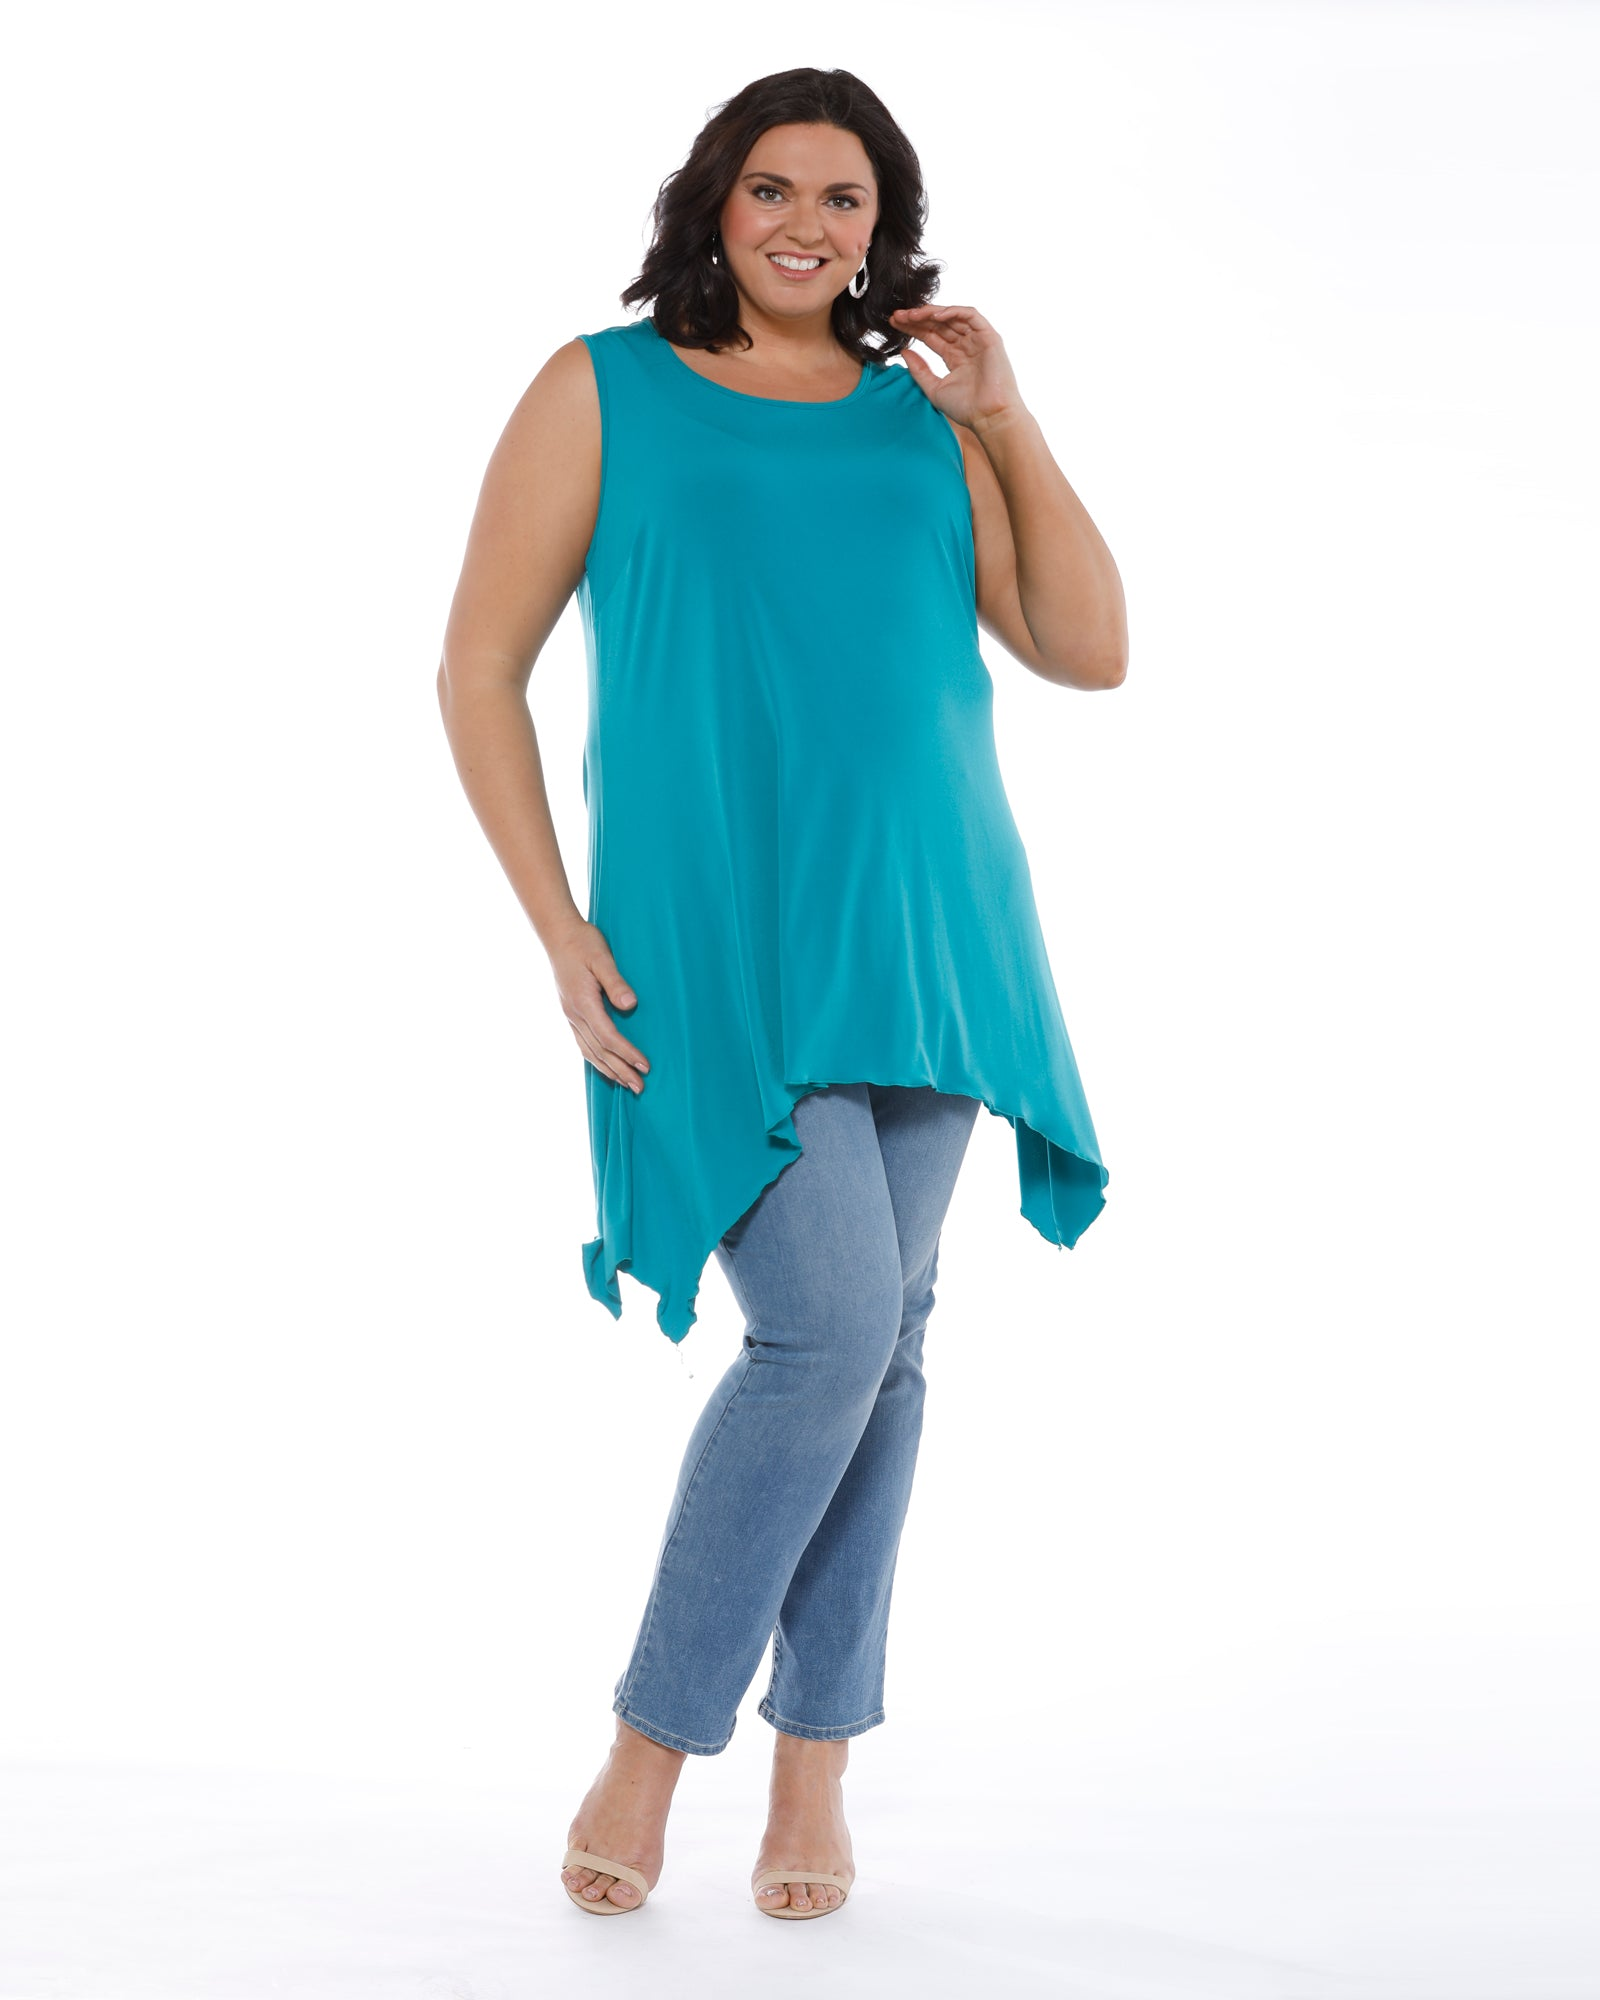 Soft Knit Tunic - Teal Size 14, 16 & 24 Left